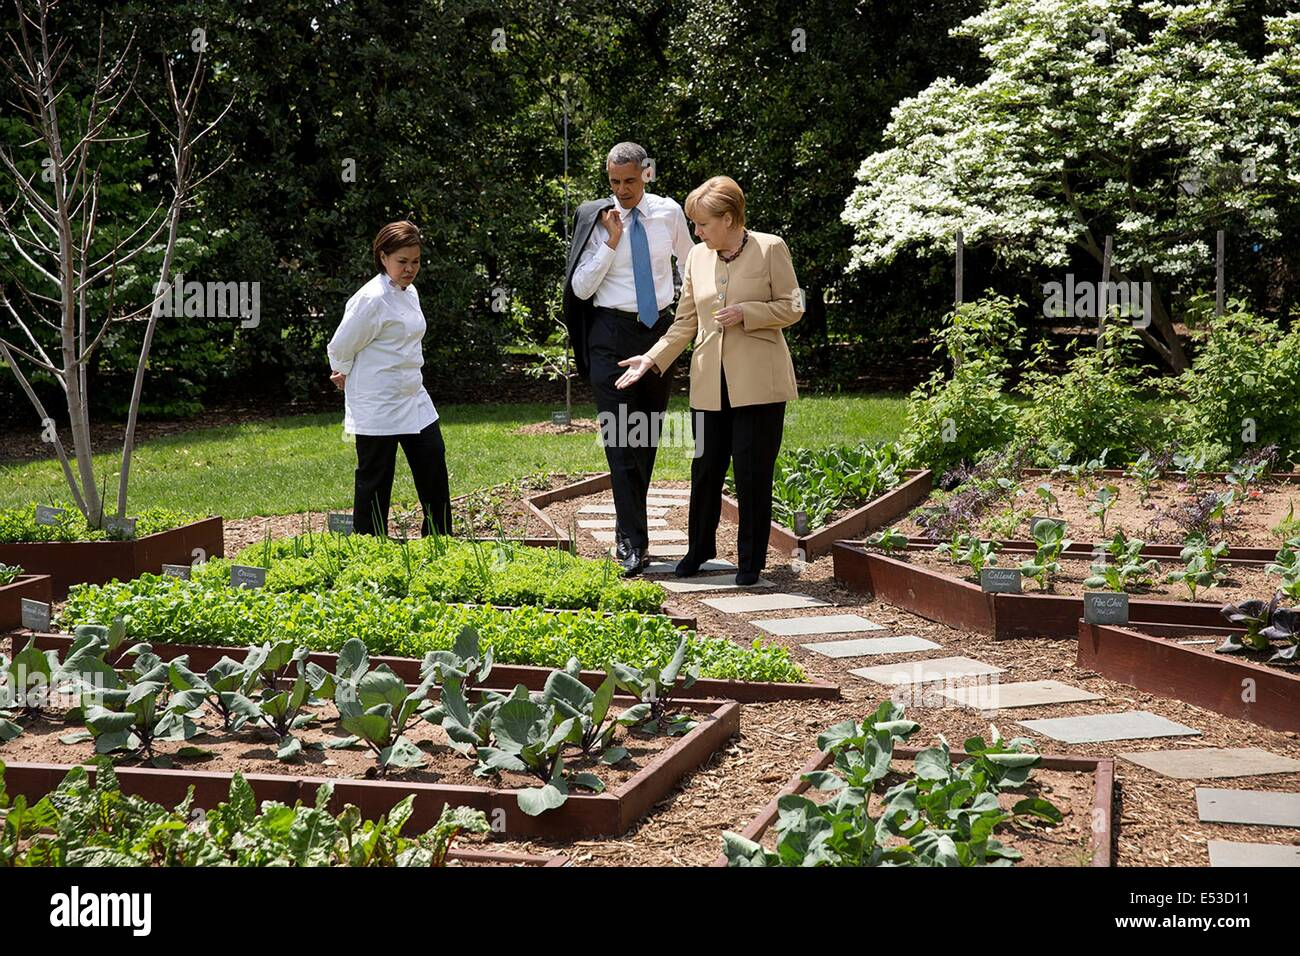 US President Barack Obama And Chancellor Angela Merkel Of Germany Tour The  White House Kitchen Garden